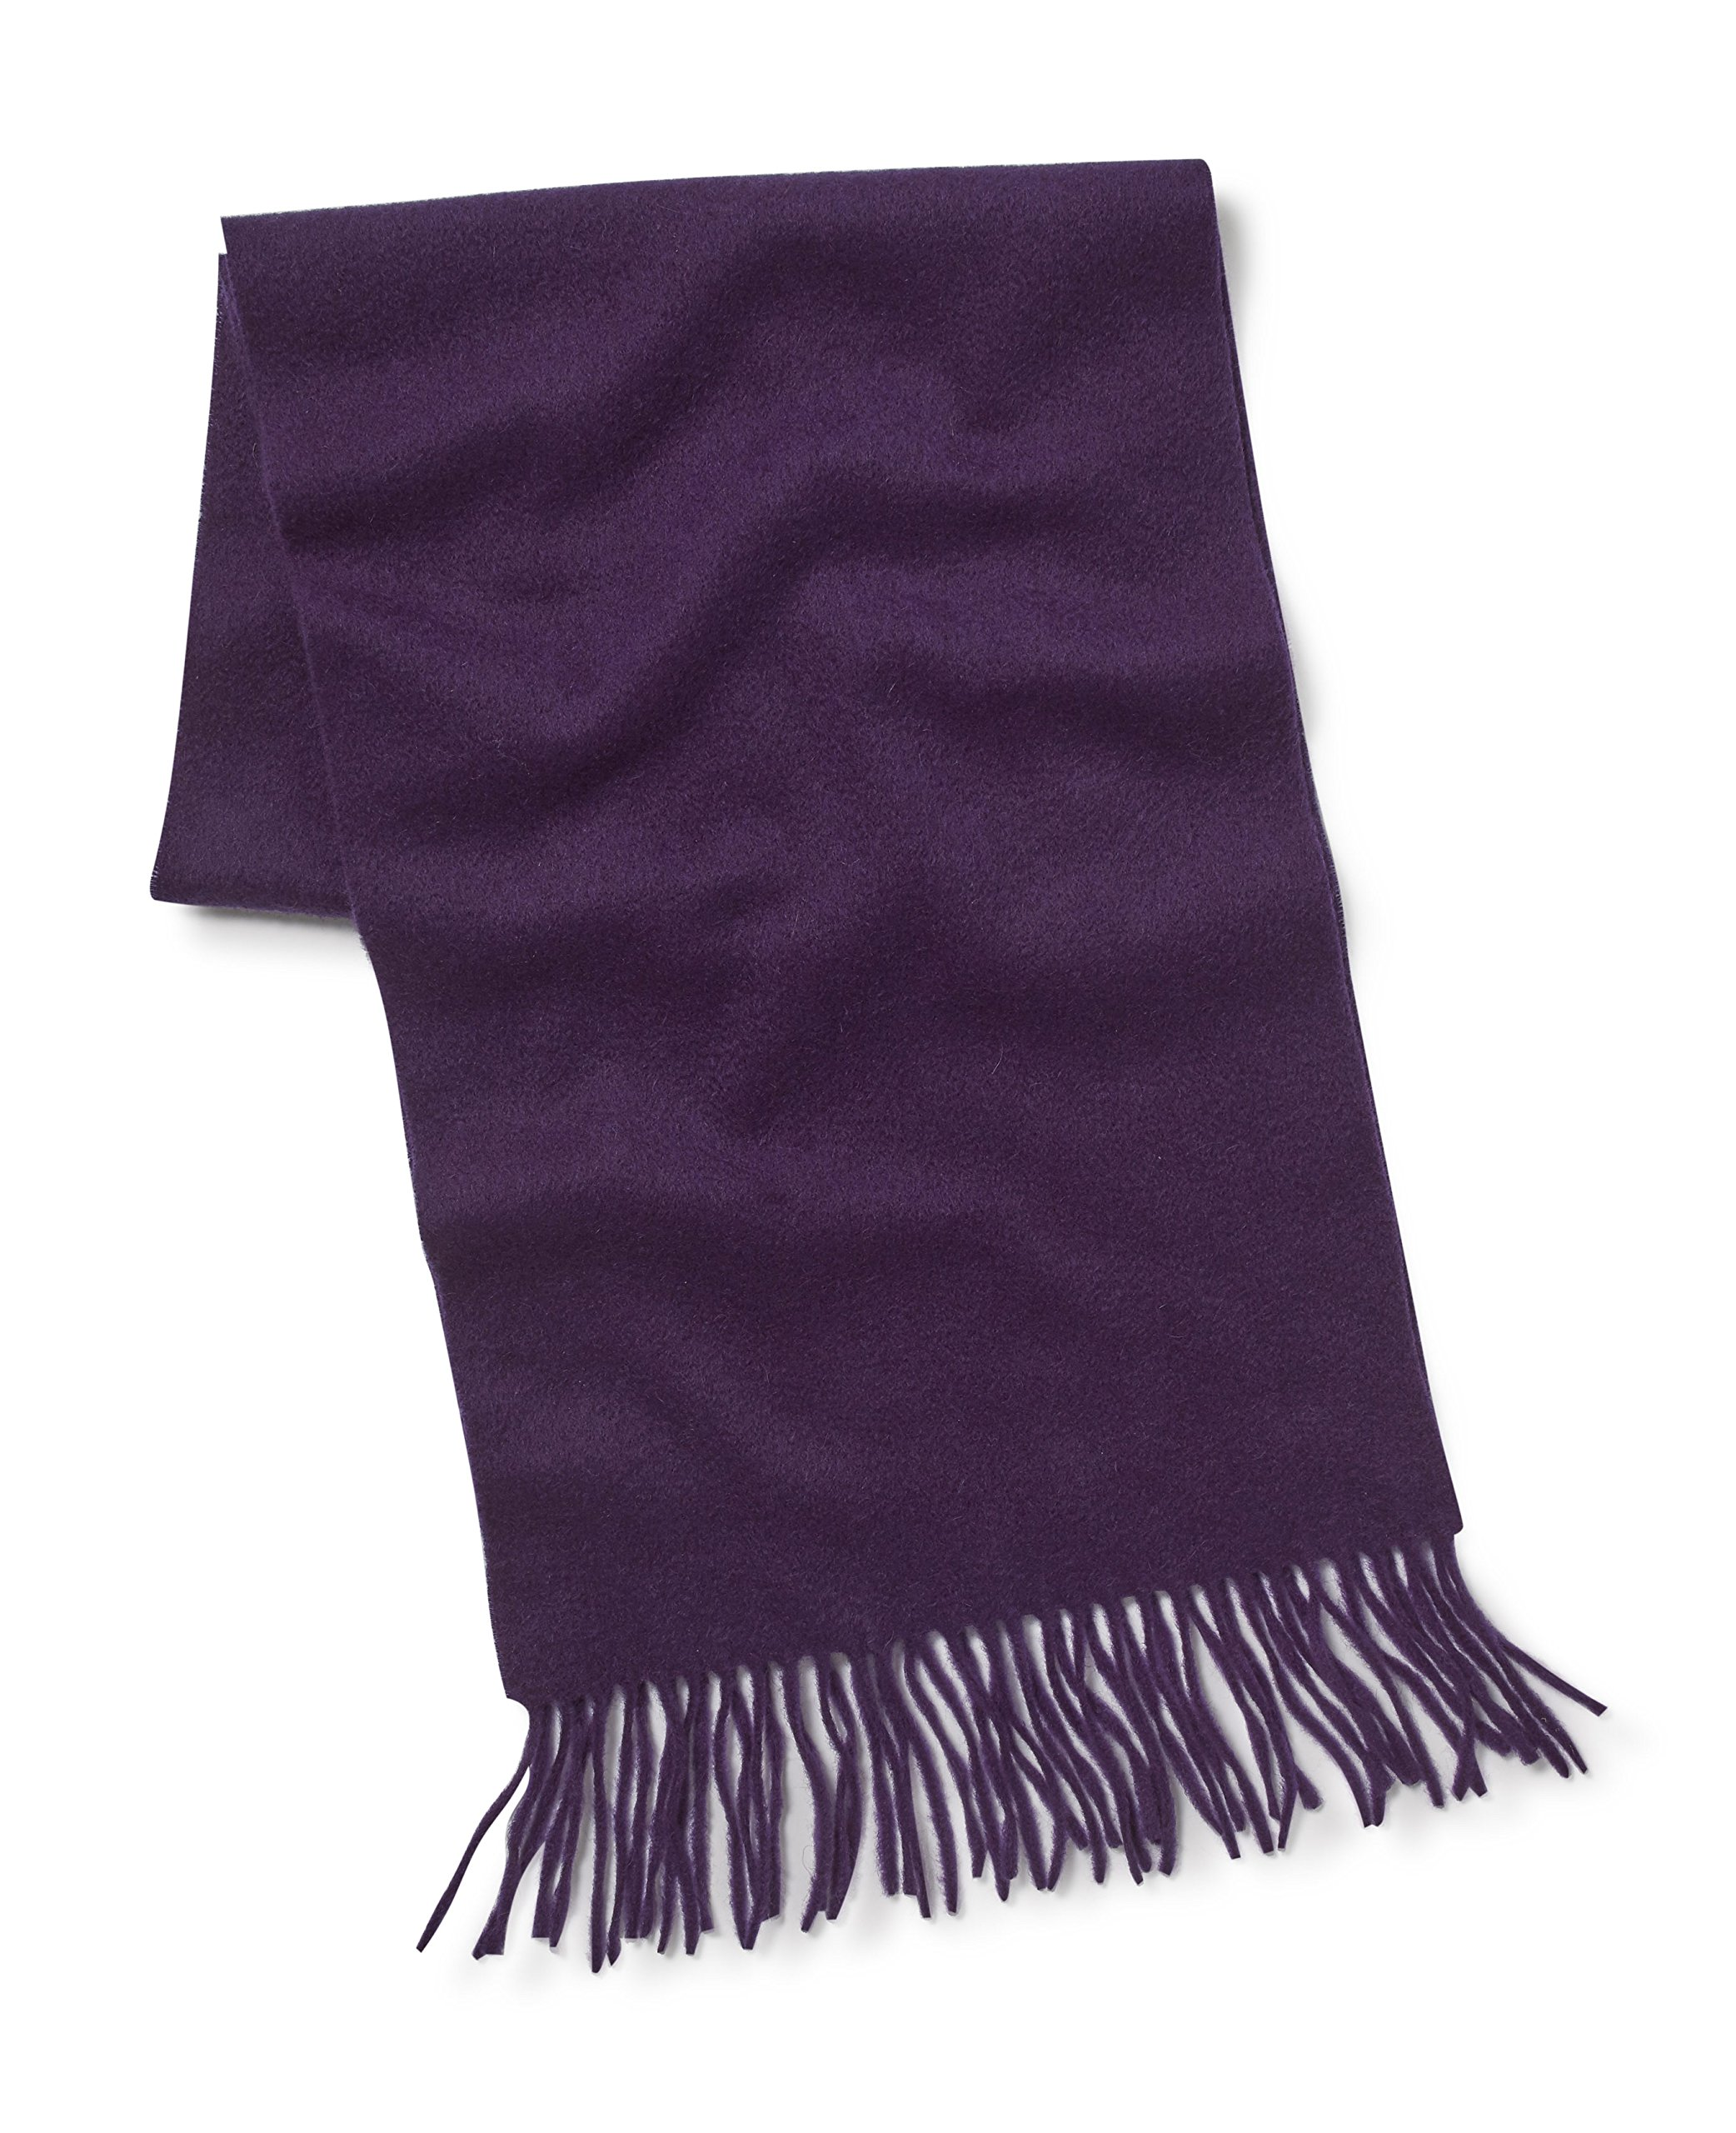 Savile Row Men's Purple Cashmere Scarf in Gift Box